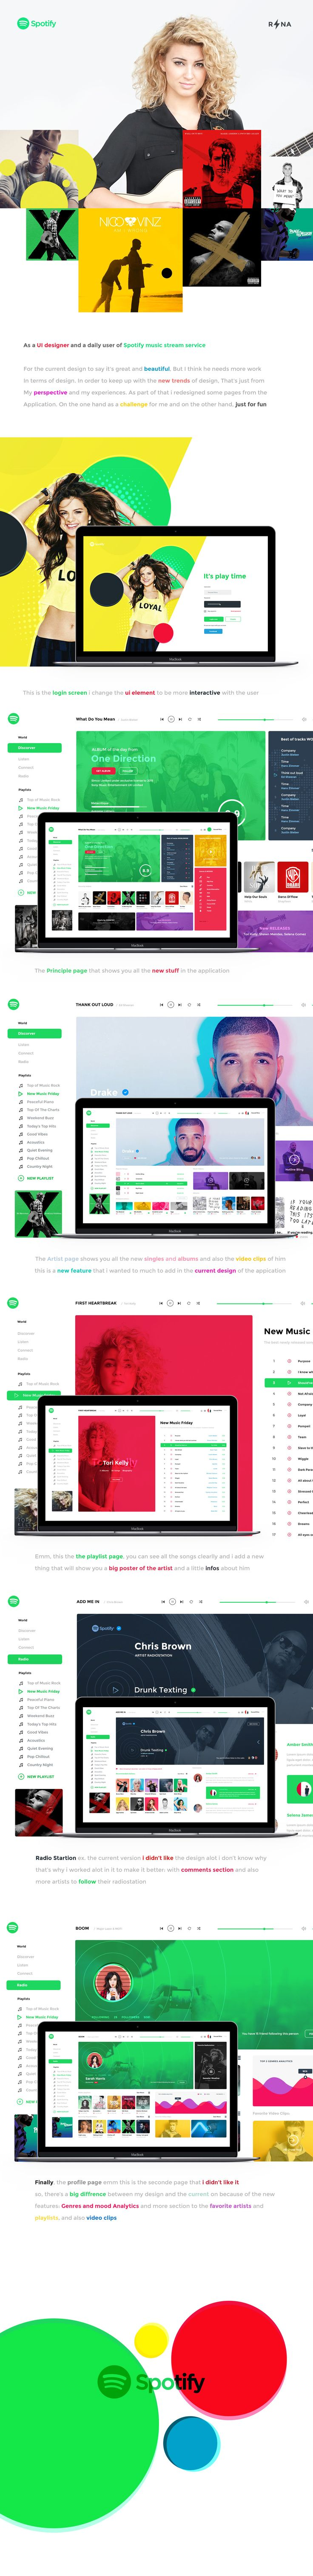 As a UI designer and a daily user of Spotify music stream service. For the current design to say it's great and beautiful, But I think he needs more work In terms of design. In order to keep up with the new trends of design, That's just fromMy perspec…